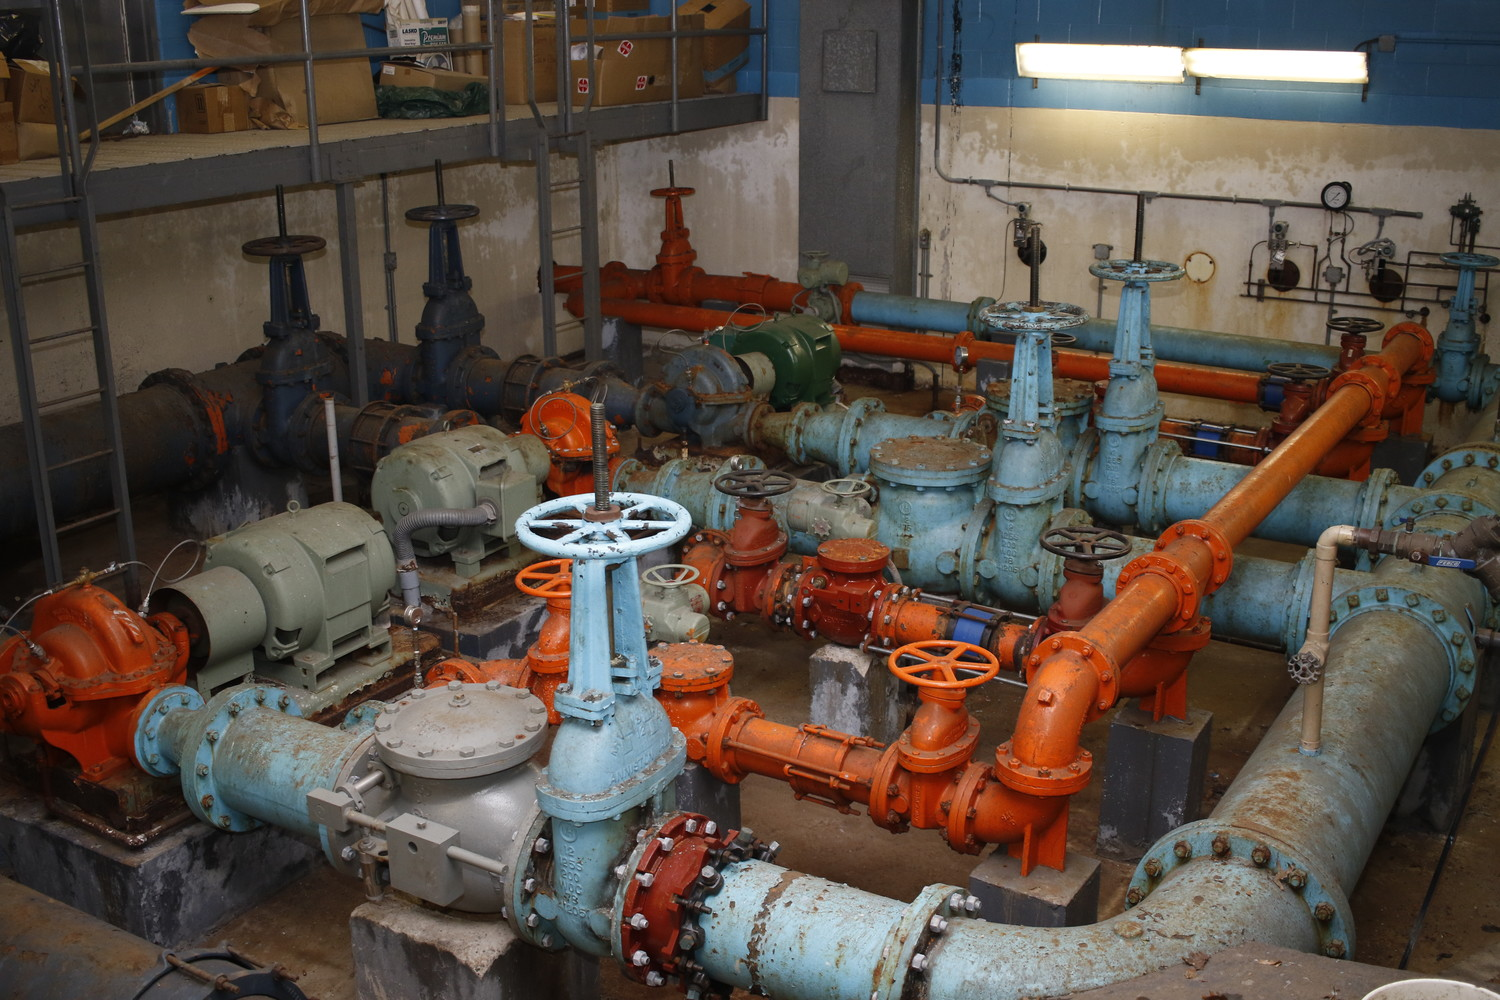 The many winding pipes and valves of Well 31.